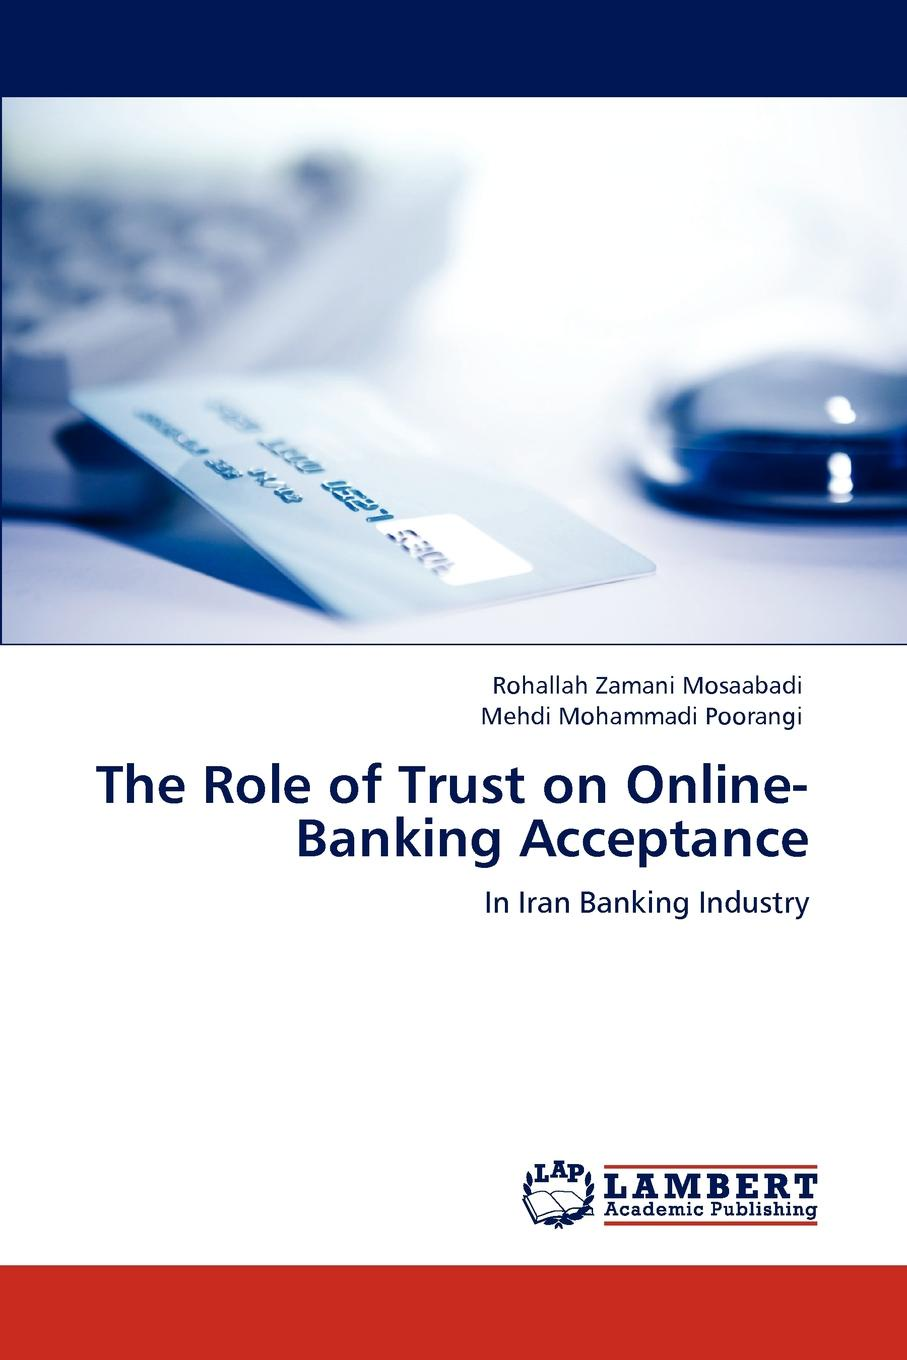 Rohallah Zamani Mosaabadi, Mehdi Mohammadi Poorangi The Role of Trust on Online-Banking Acceptance sherwyn morreale building the high trust organization strategies for supporting five key dimensions of trust